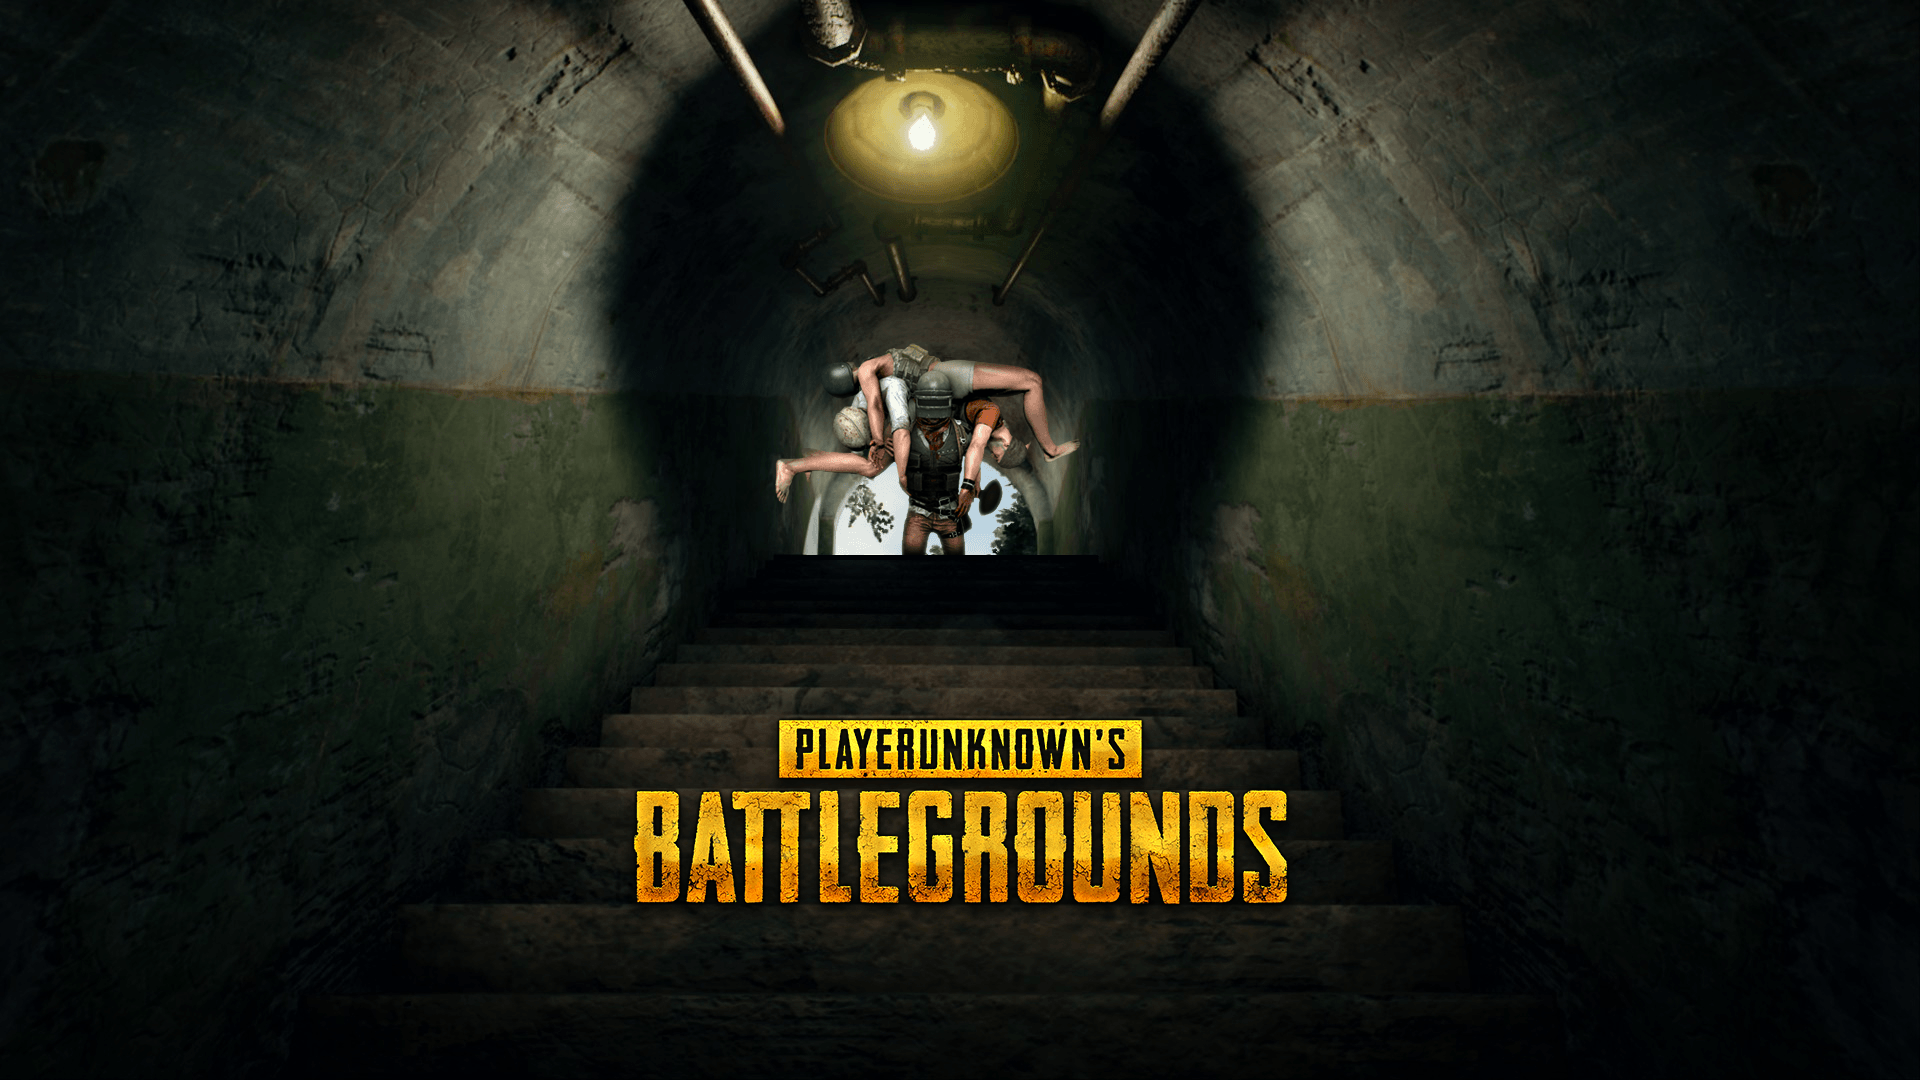 Pubg Sanhok Wallpaper 4k: PUBG Mobile Wallpapers